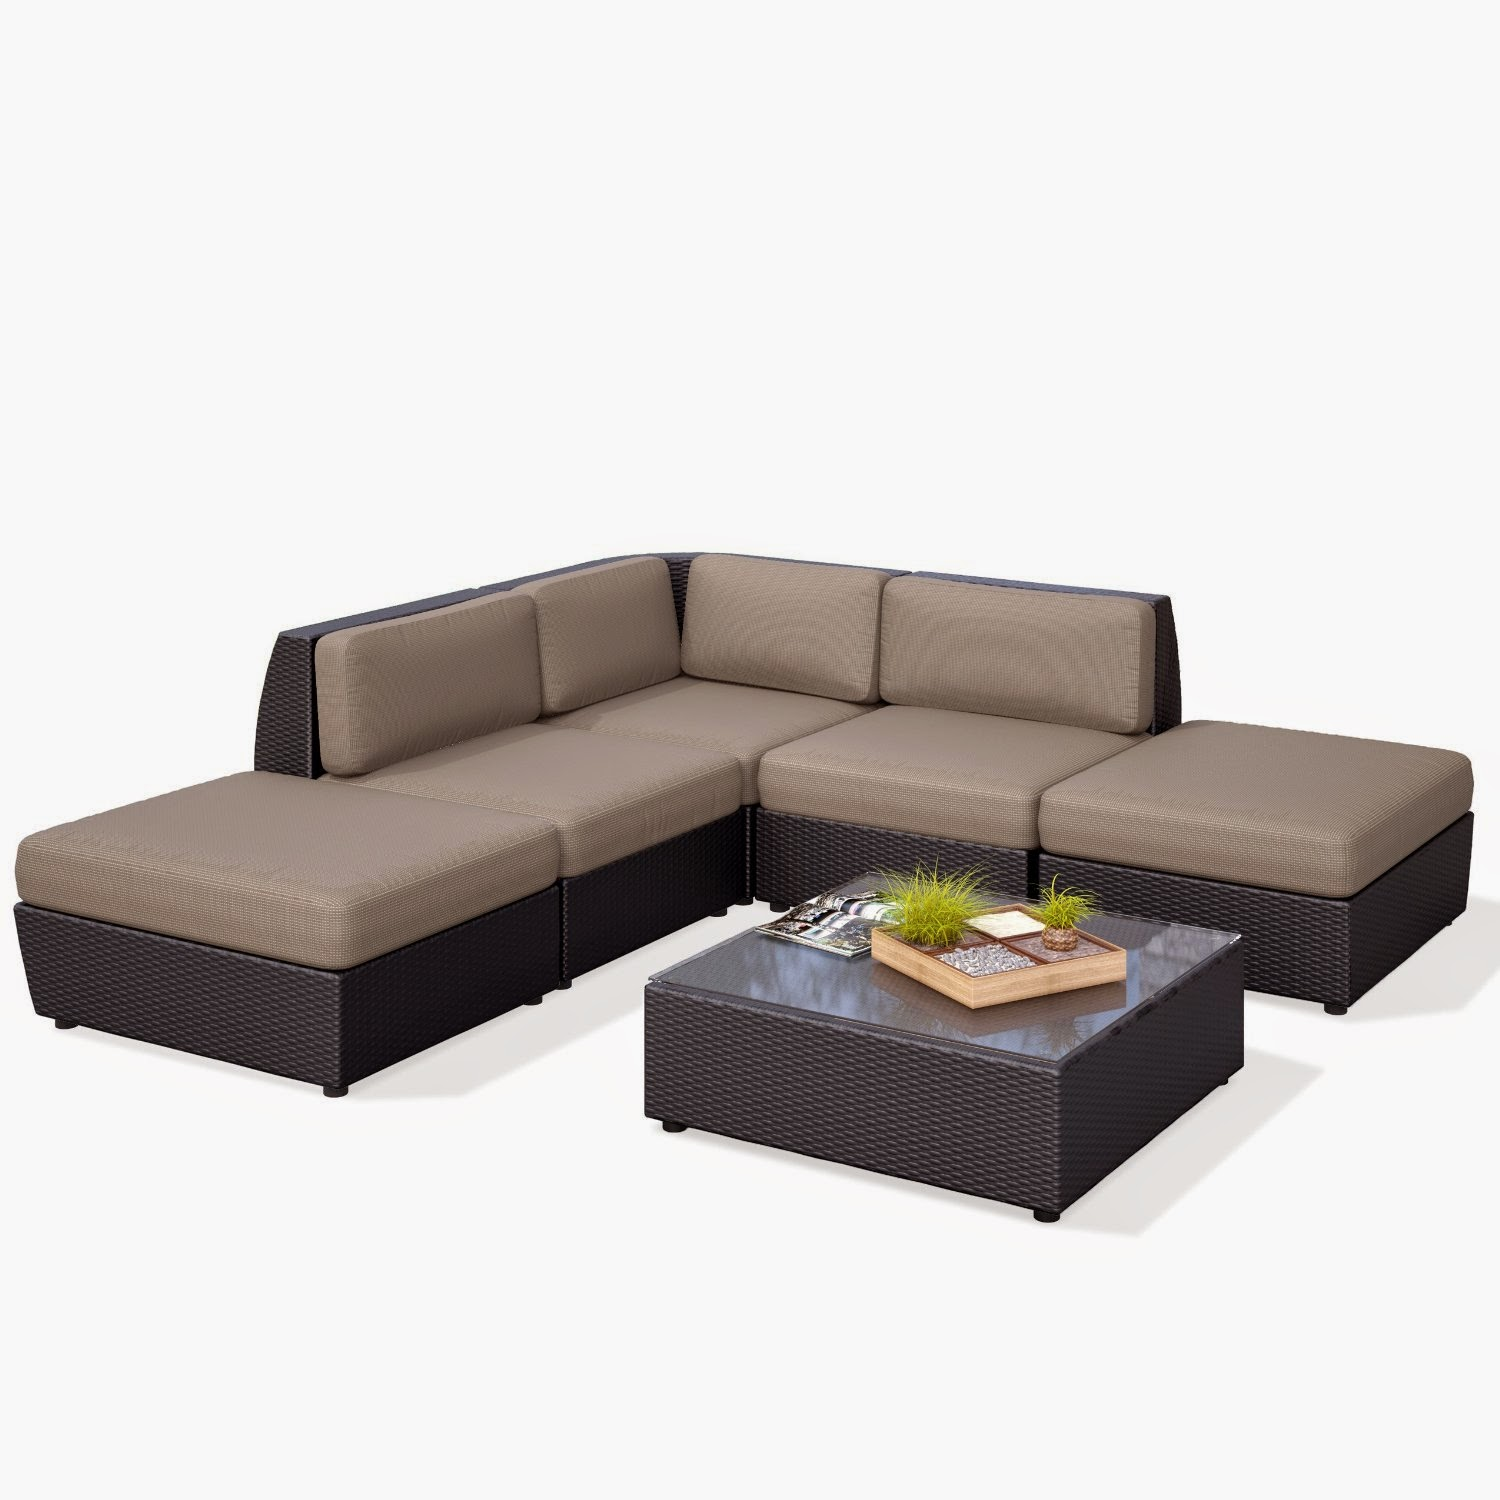 Curved sofa website reviews curved sectional sofa with chaise for Sectional couch